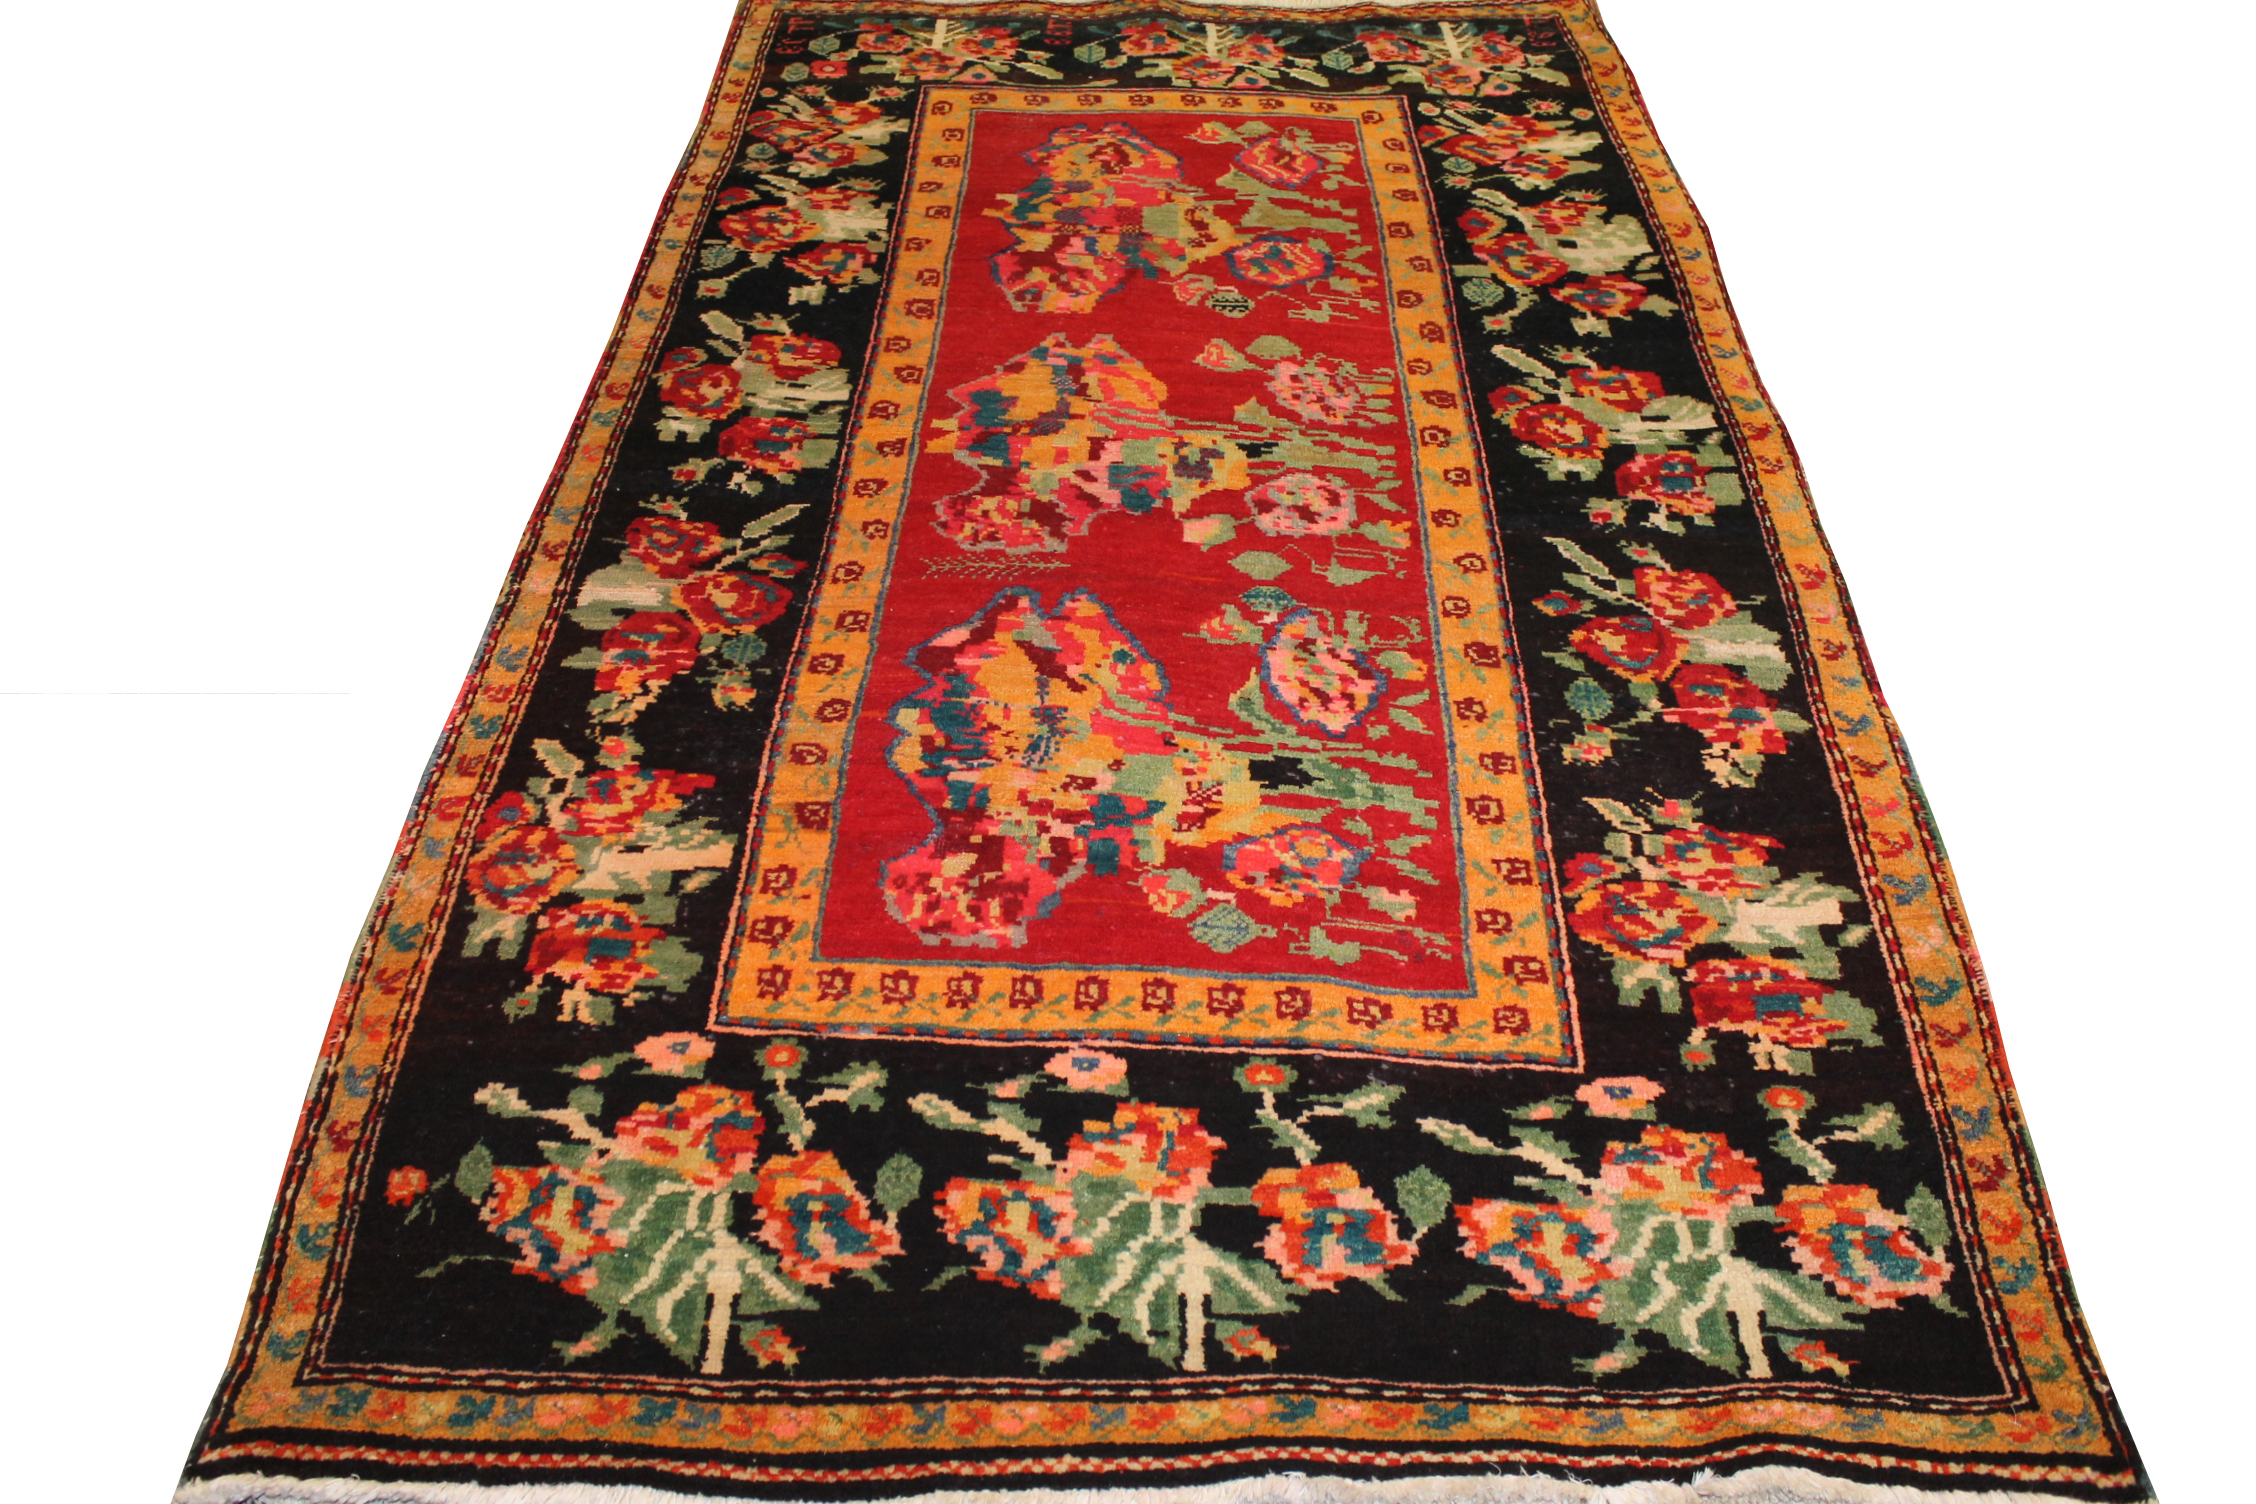 5x7/8 Traditional Hand Knotted Wool Area Rug - MR020189